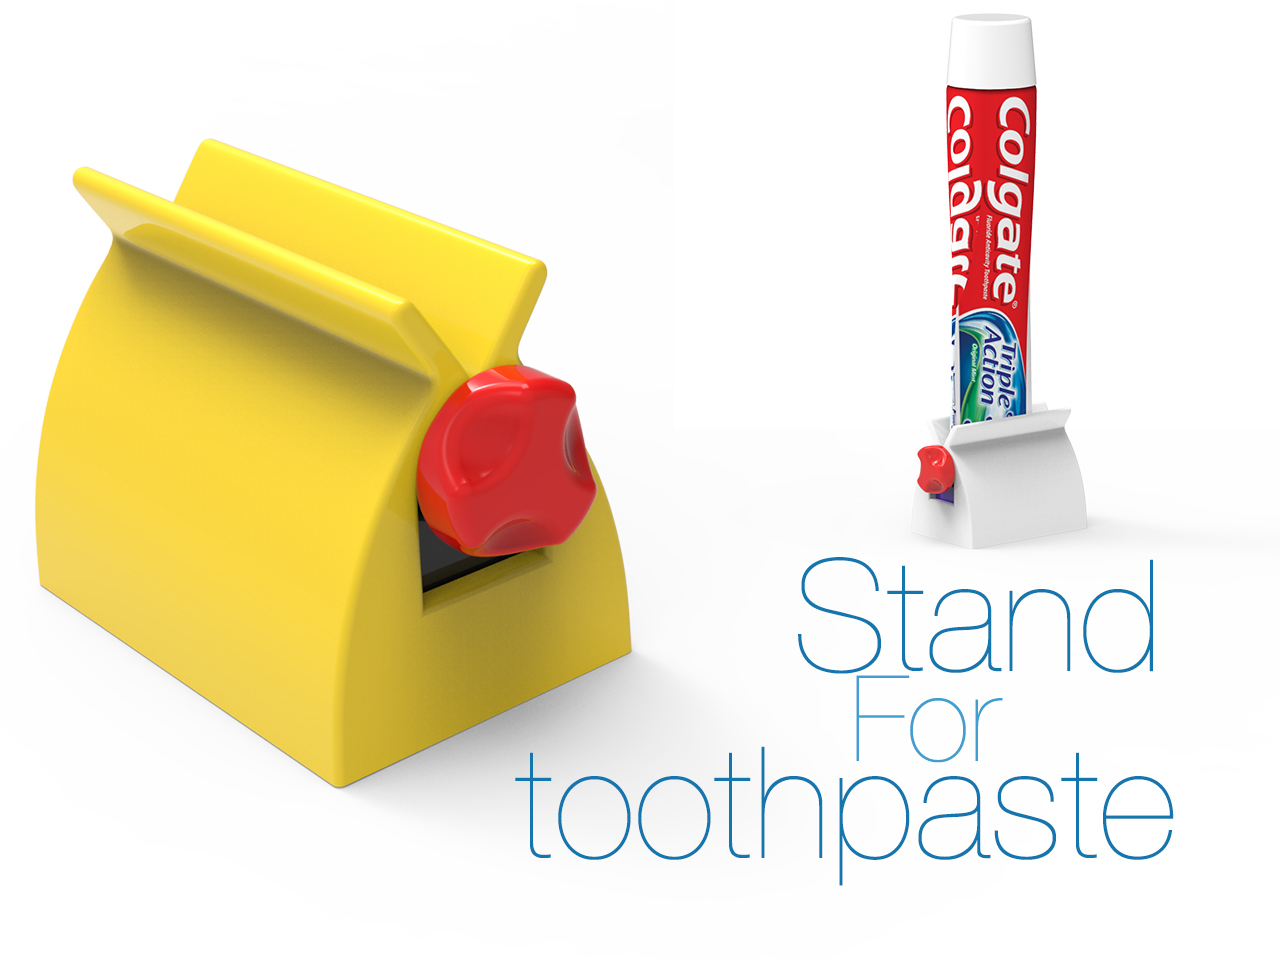 333.jpg Download free STL file Stand for toothpaste • 3D printer object, Ruvimkub